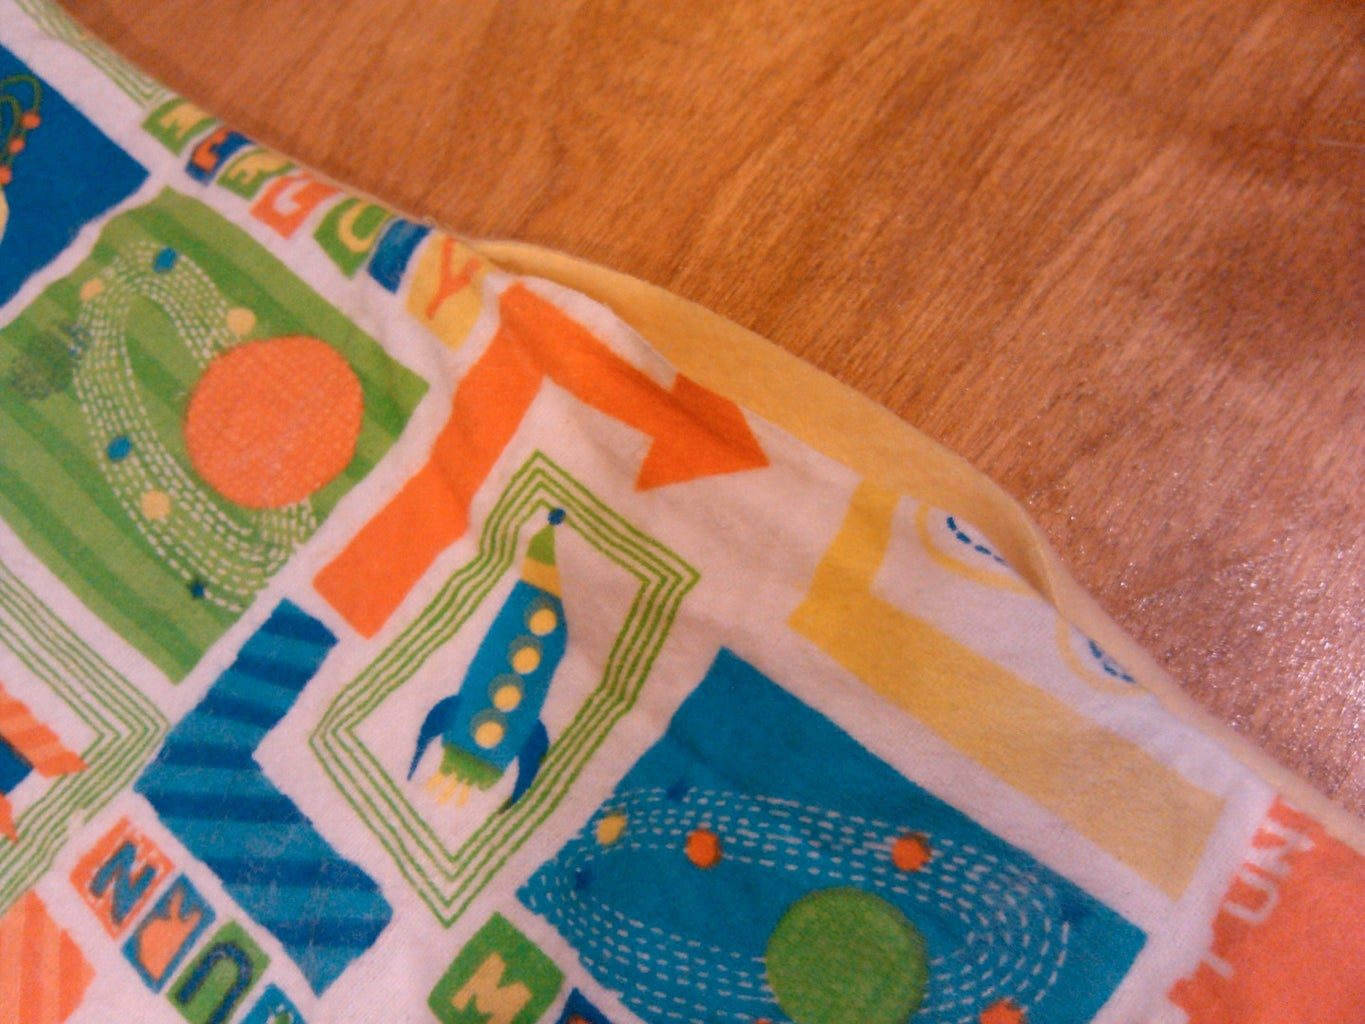 Sew Right Sides Together (leave Small Opening), Flip Inside Out, and Stitch Opening Close.